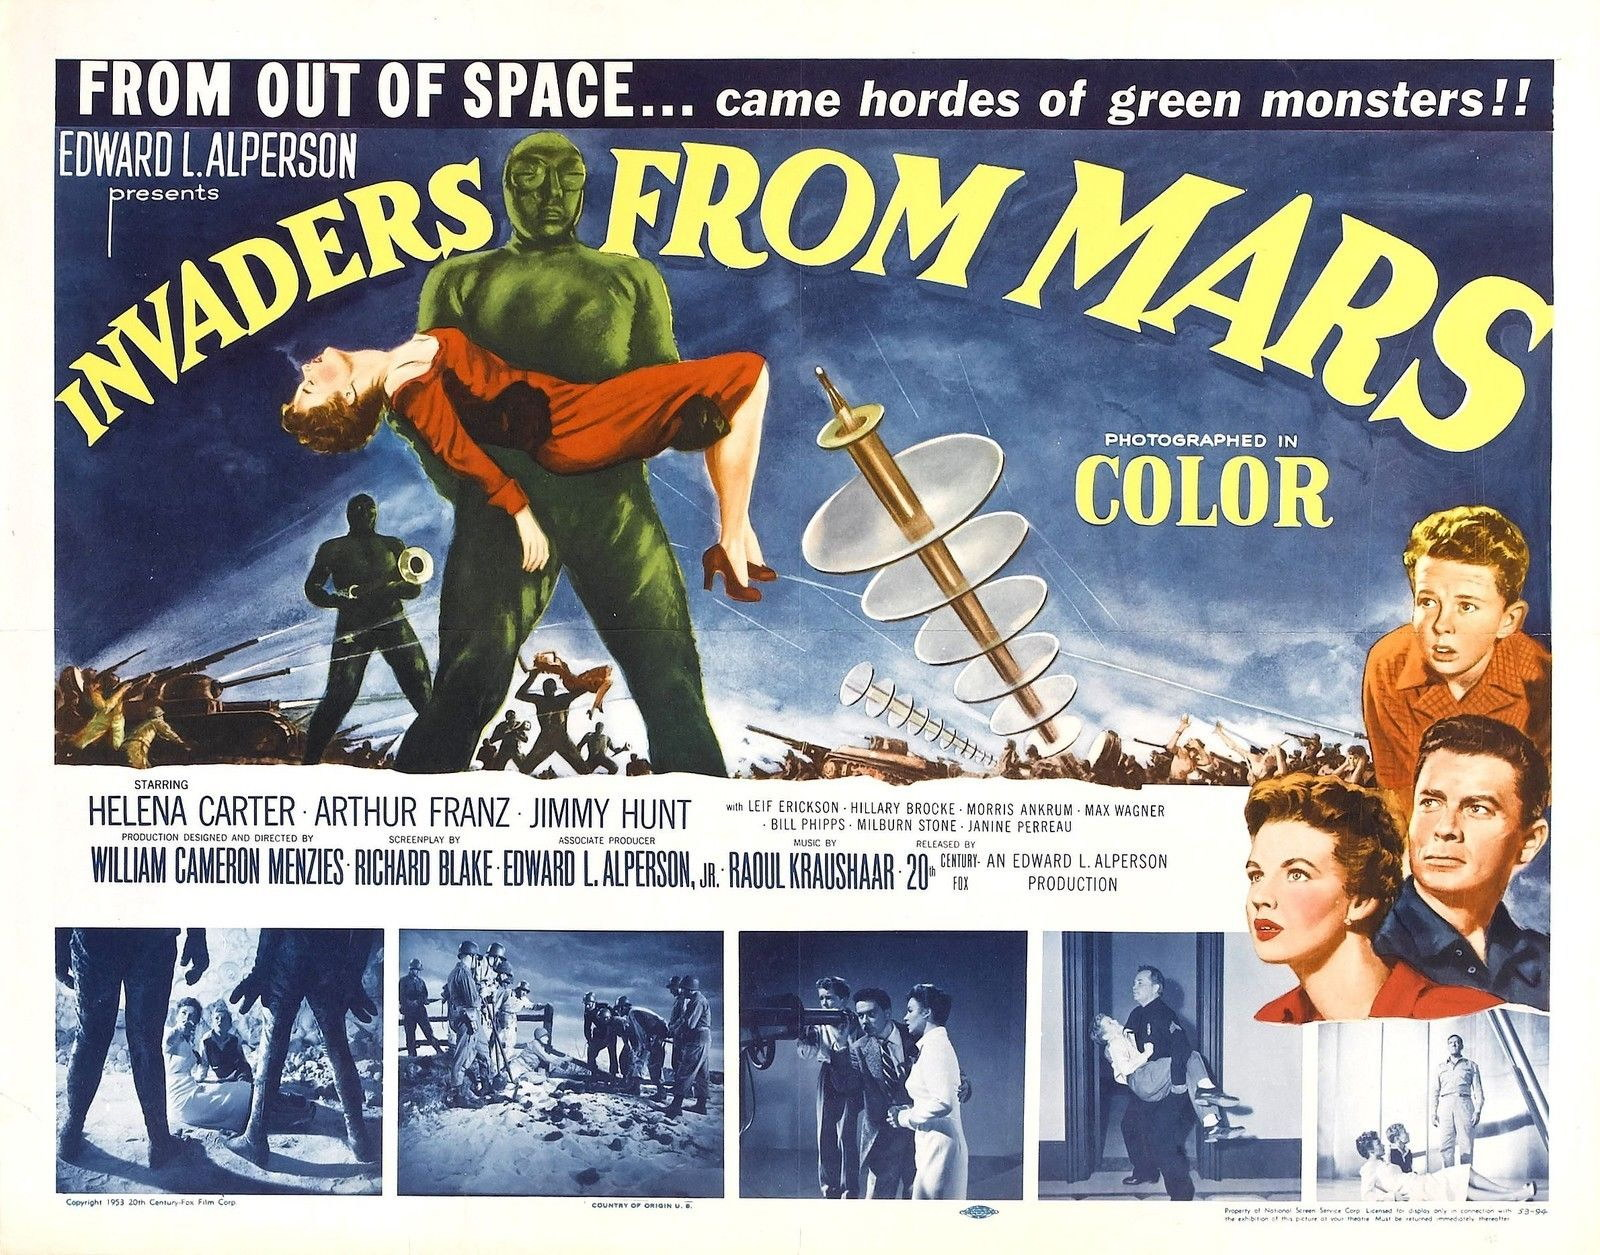 73055-INVADERS-FROM-MARS-Movie-Sci-Fi-Classic-Wall-Print-Poster-Affiche